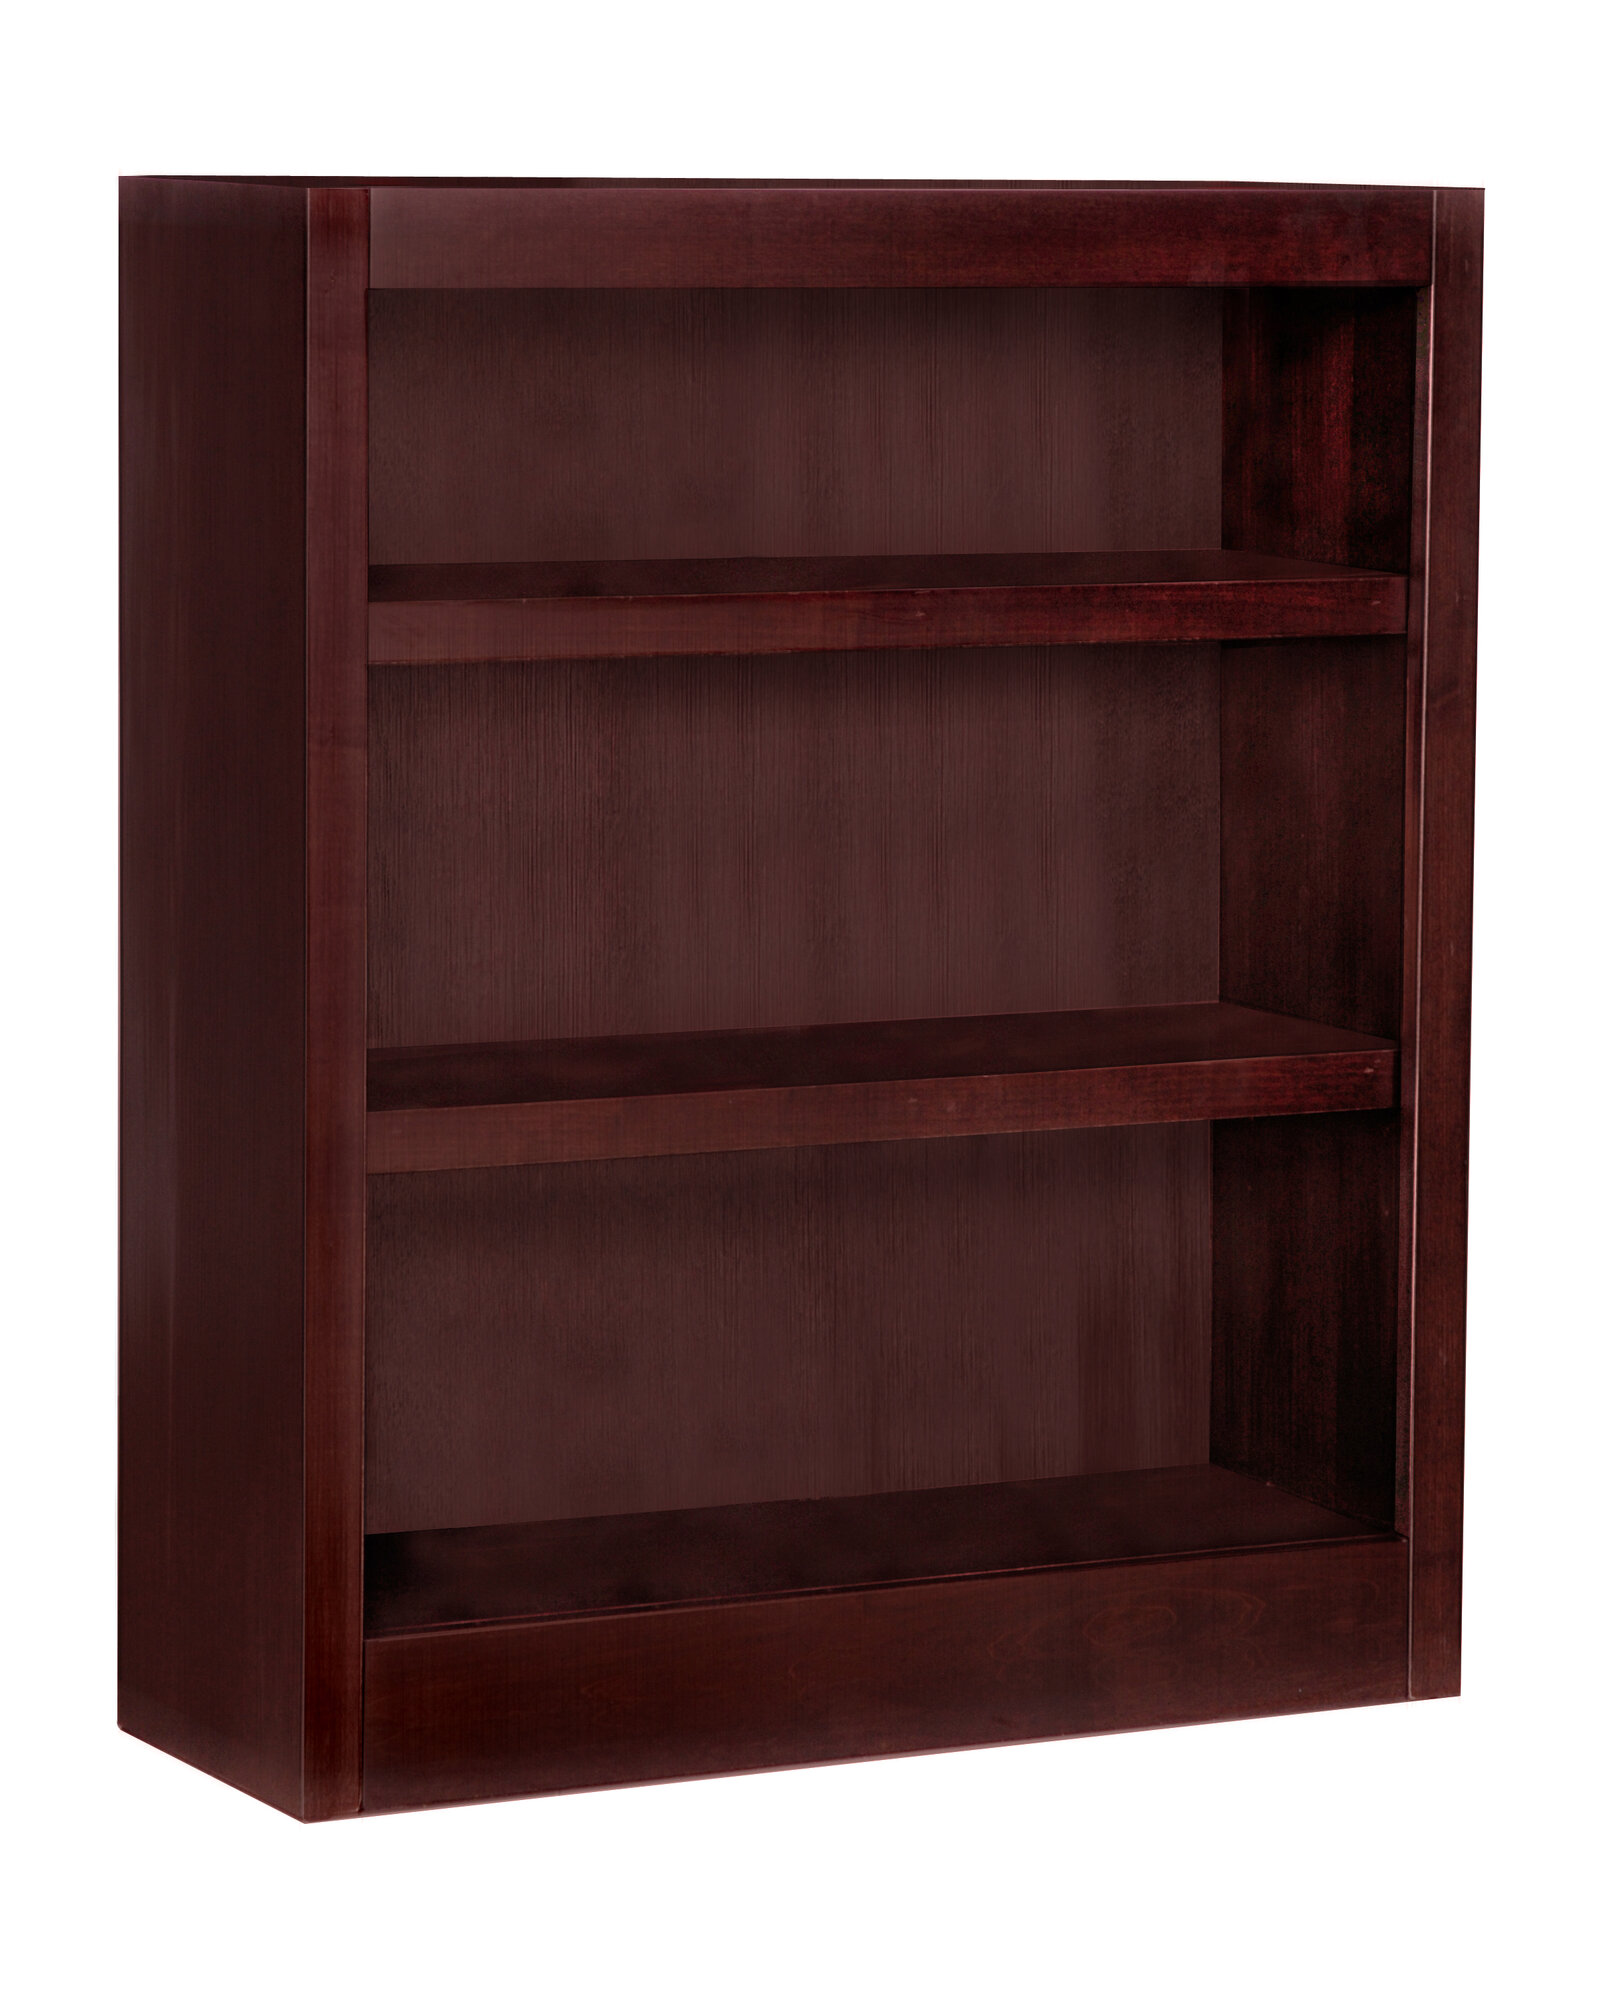 Concepts In Wood Single Wide 36 Standard Bookcase EBay